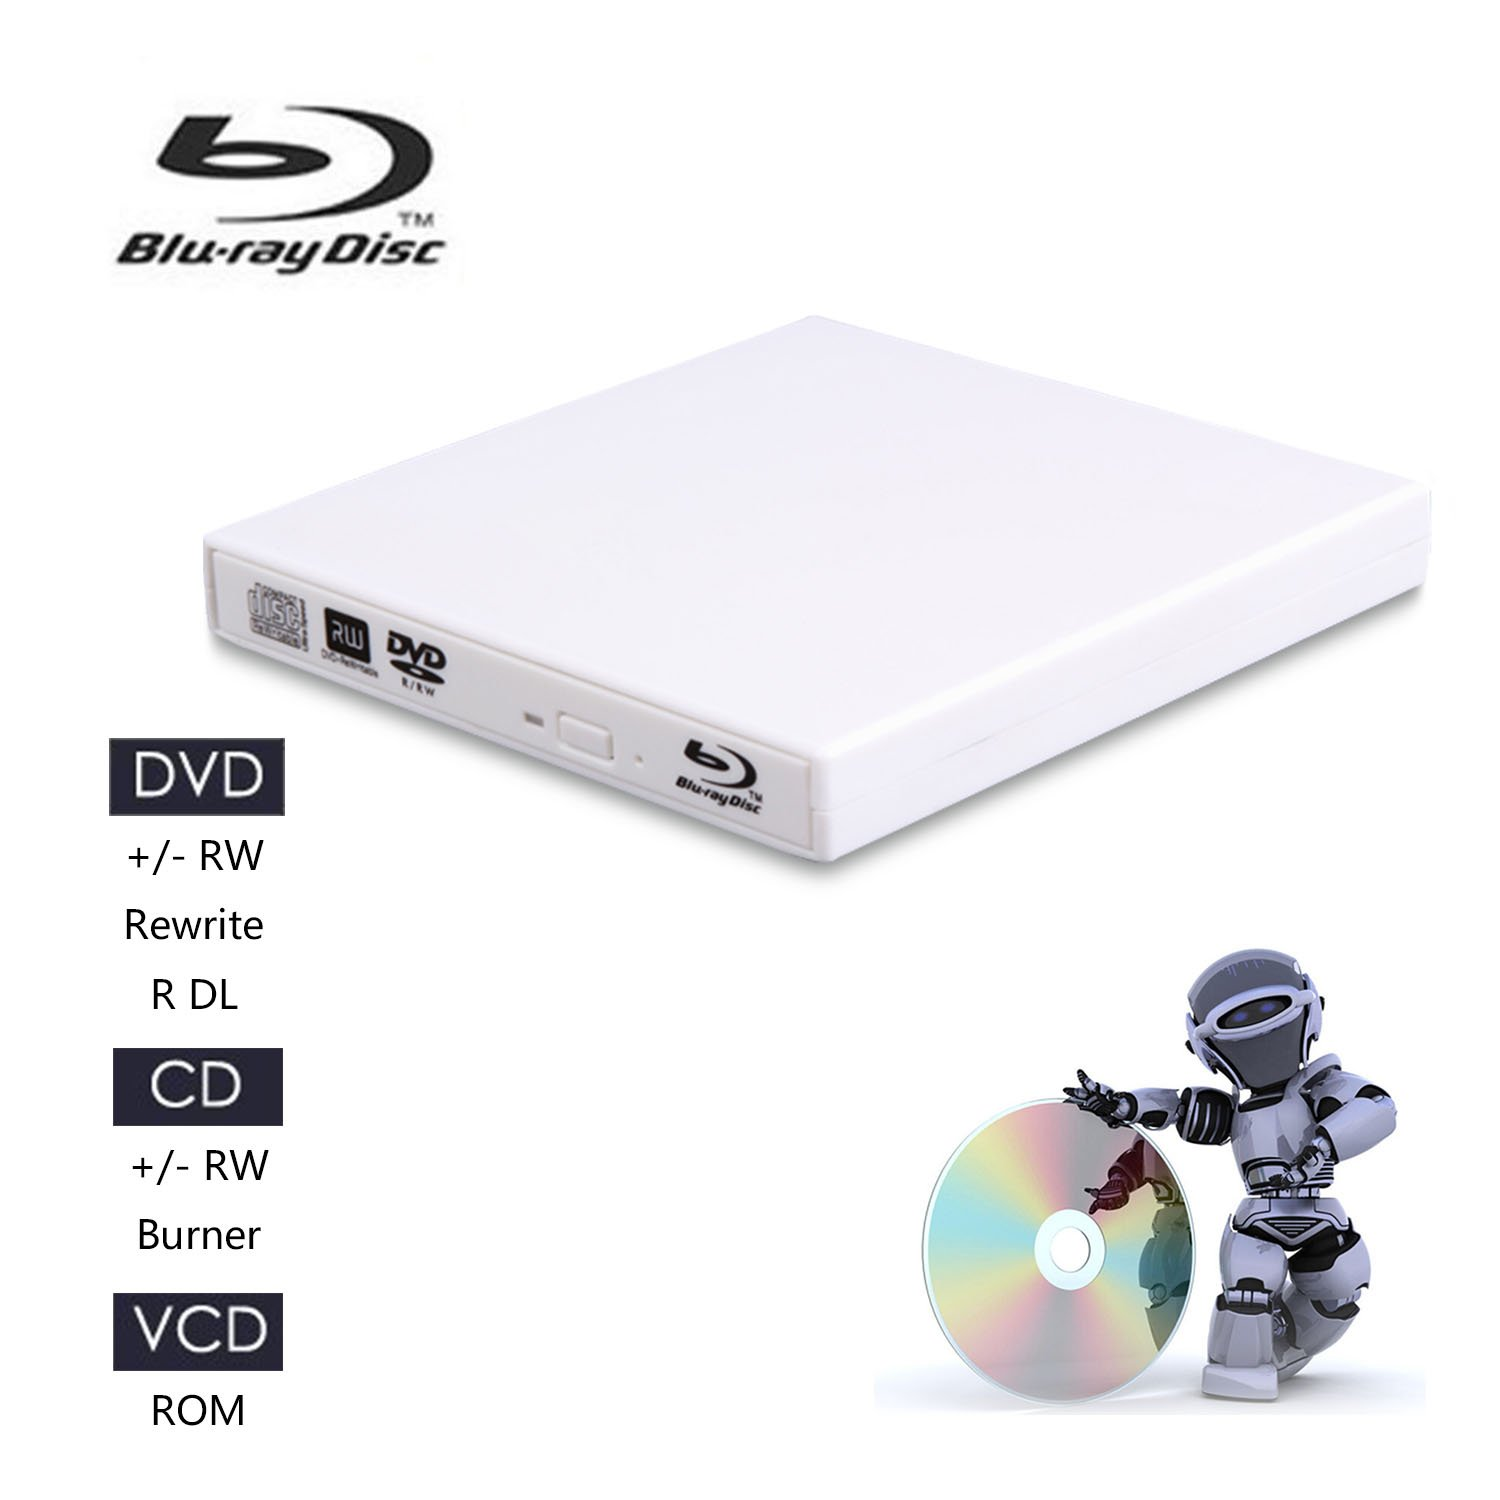 Juanery——External Blu-ray CD Drives,USB 2.0 blu-ray DVD CD Drive/BD - ROM/DVD Player for Various Brands of Desktop, Laptop, Super Notebook and so on (White)